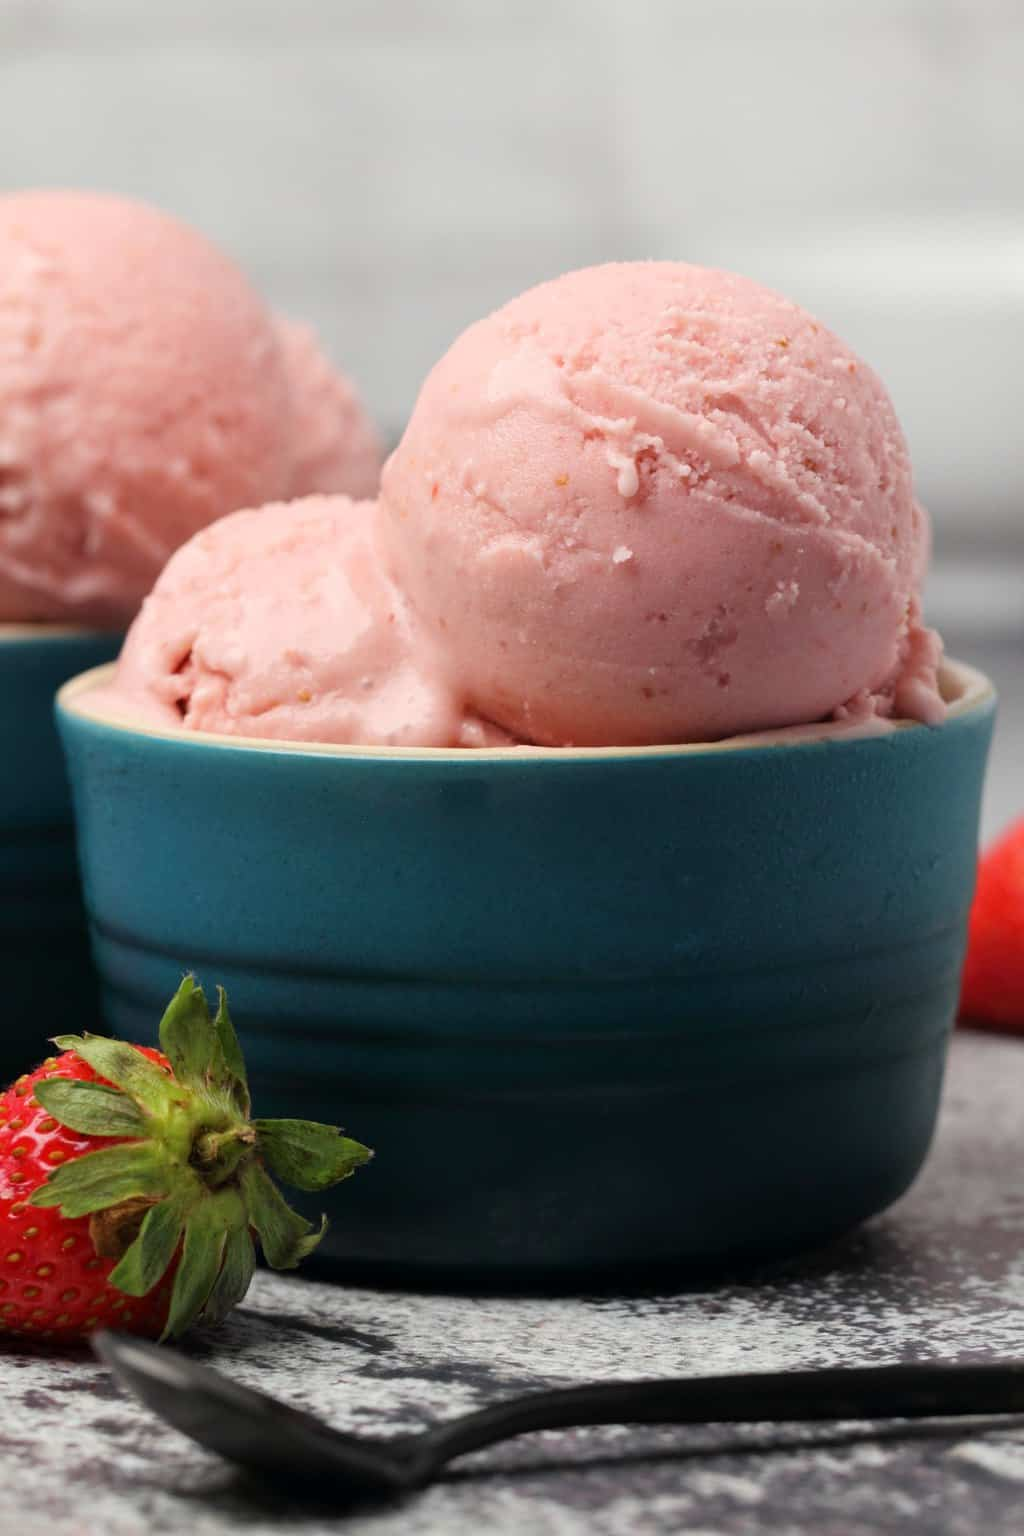 Vegan strawberry ice cream scoops in bowls.